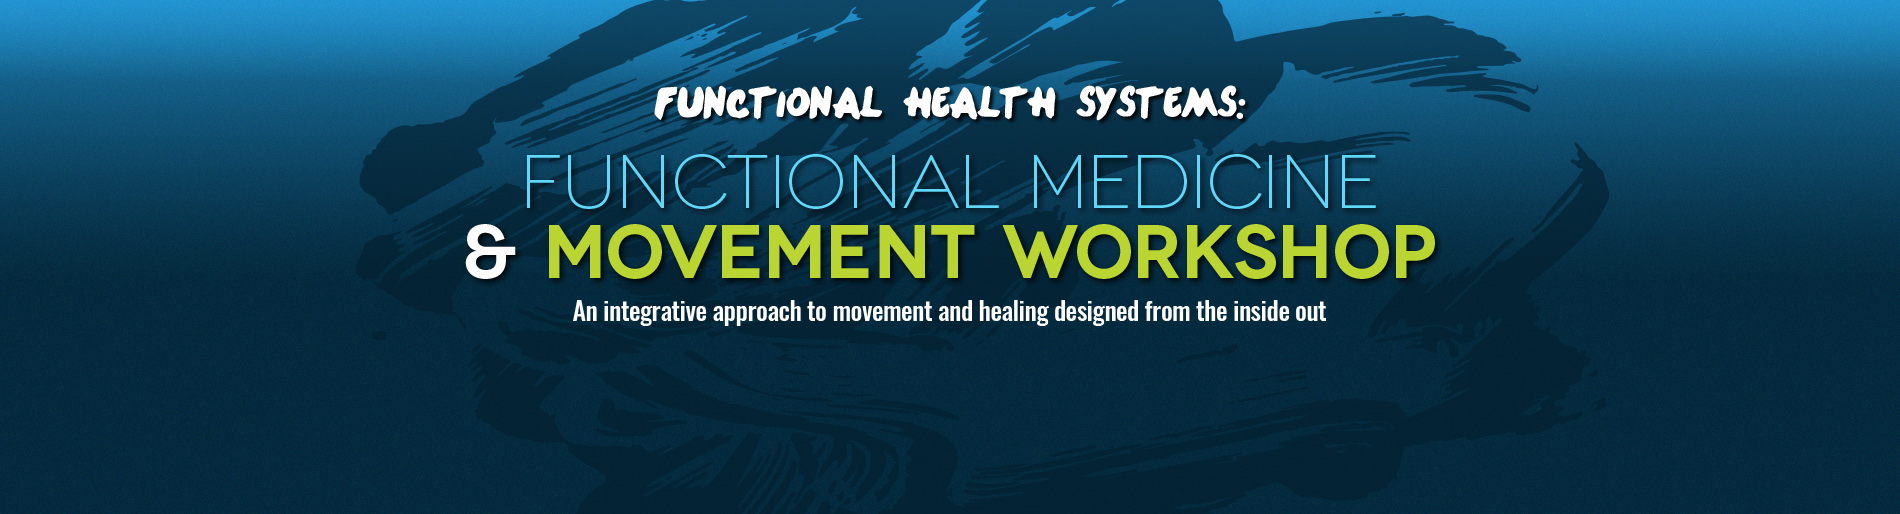 Functional Movement & Medicine workshop by Perry Nickleston mobile banner